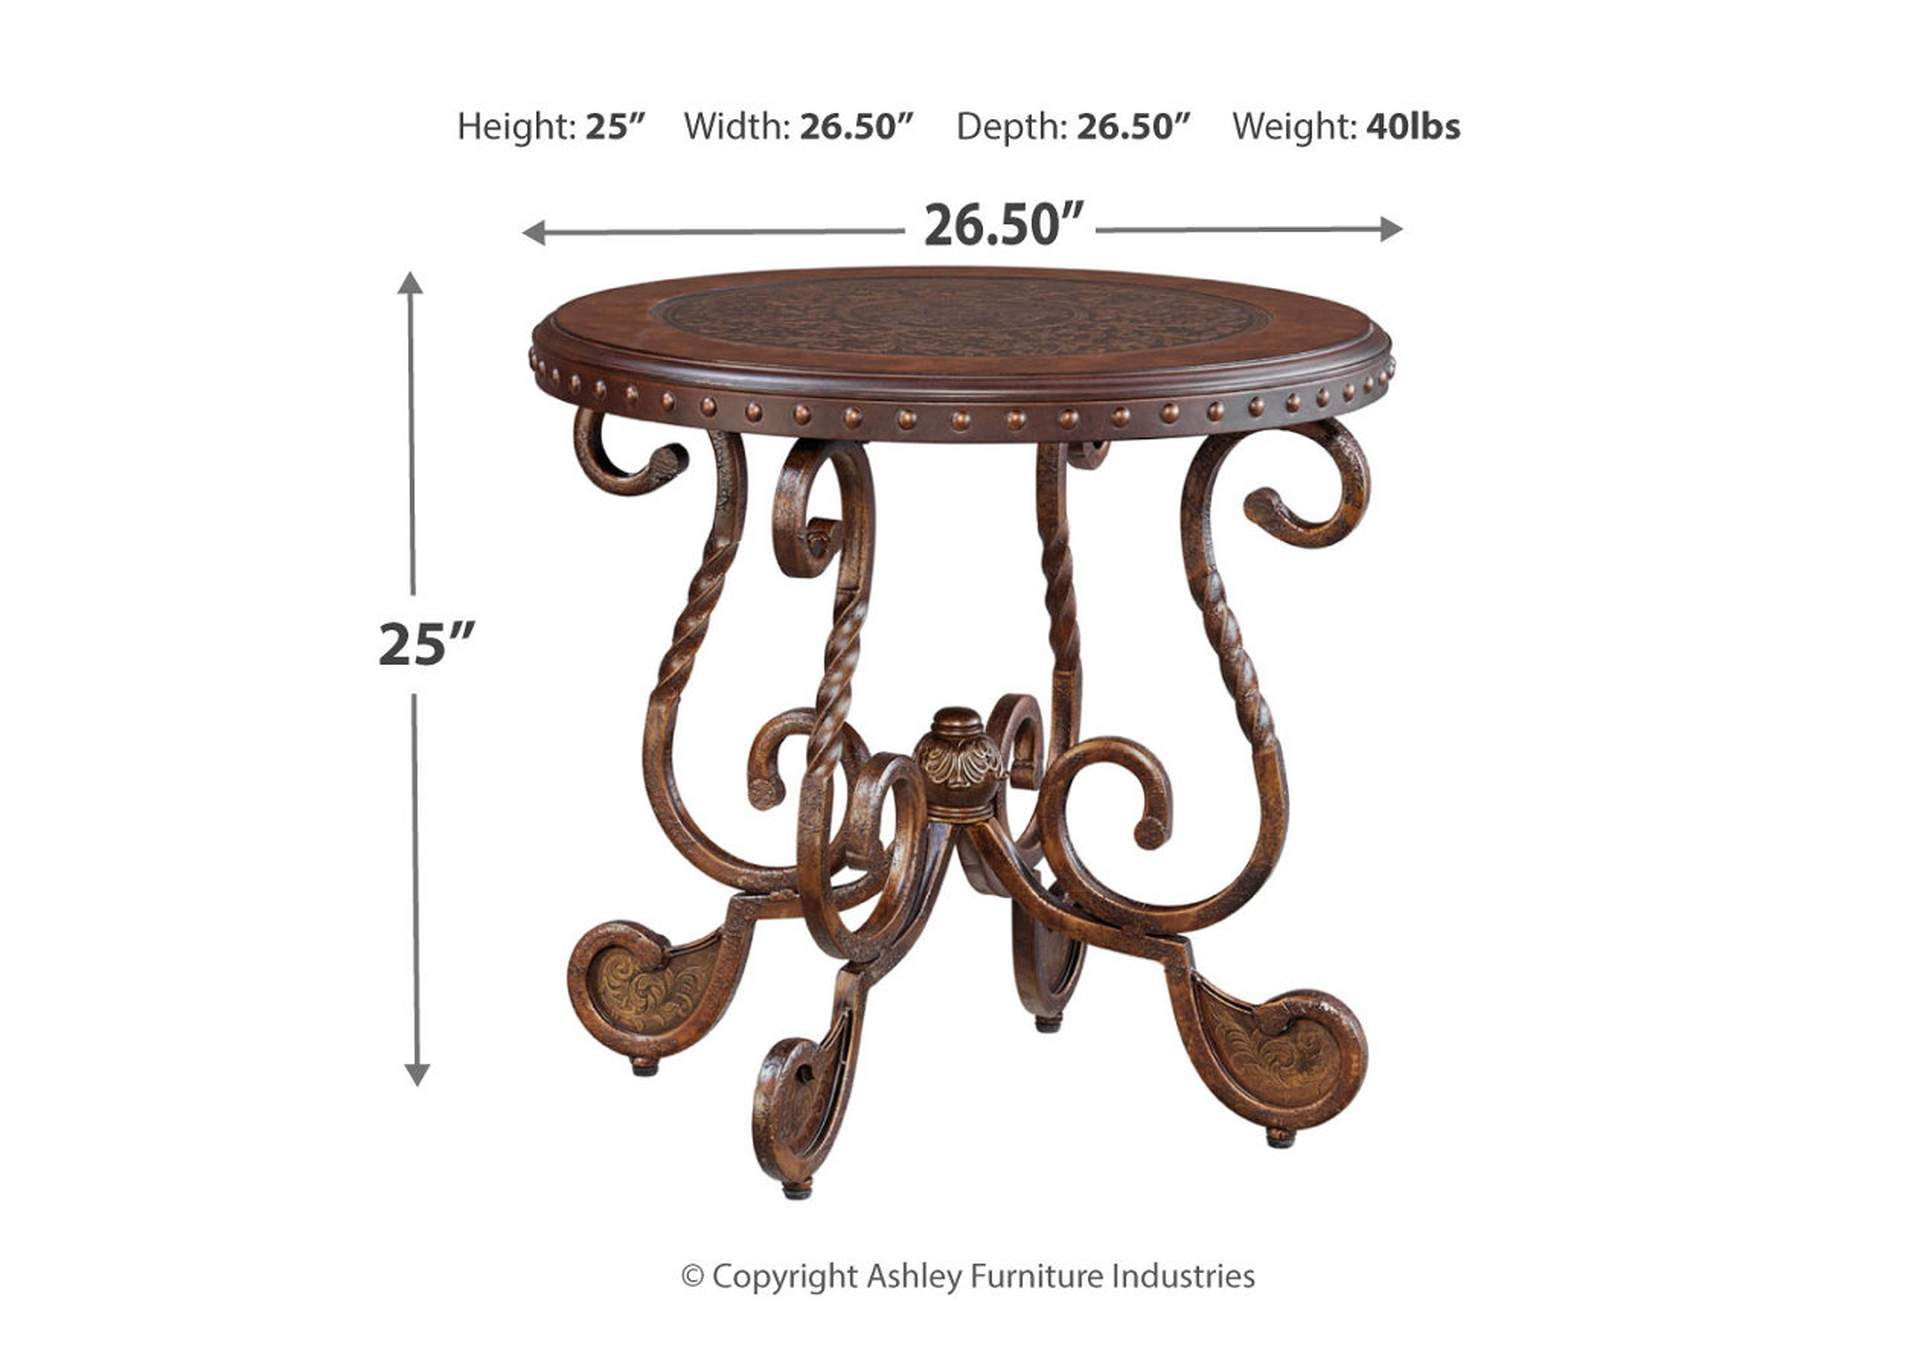 Rafferty Round End Table,Direct To Consumer Express